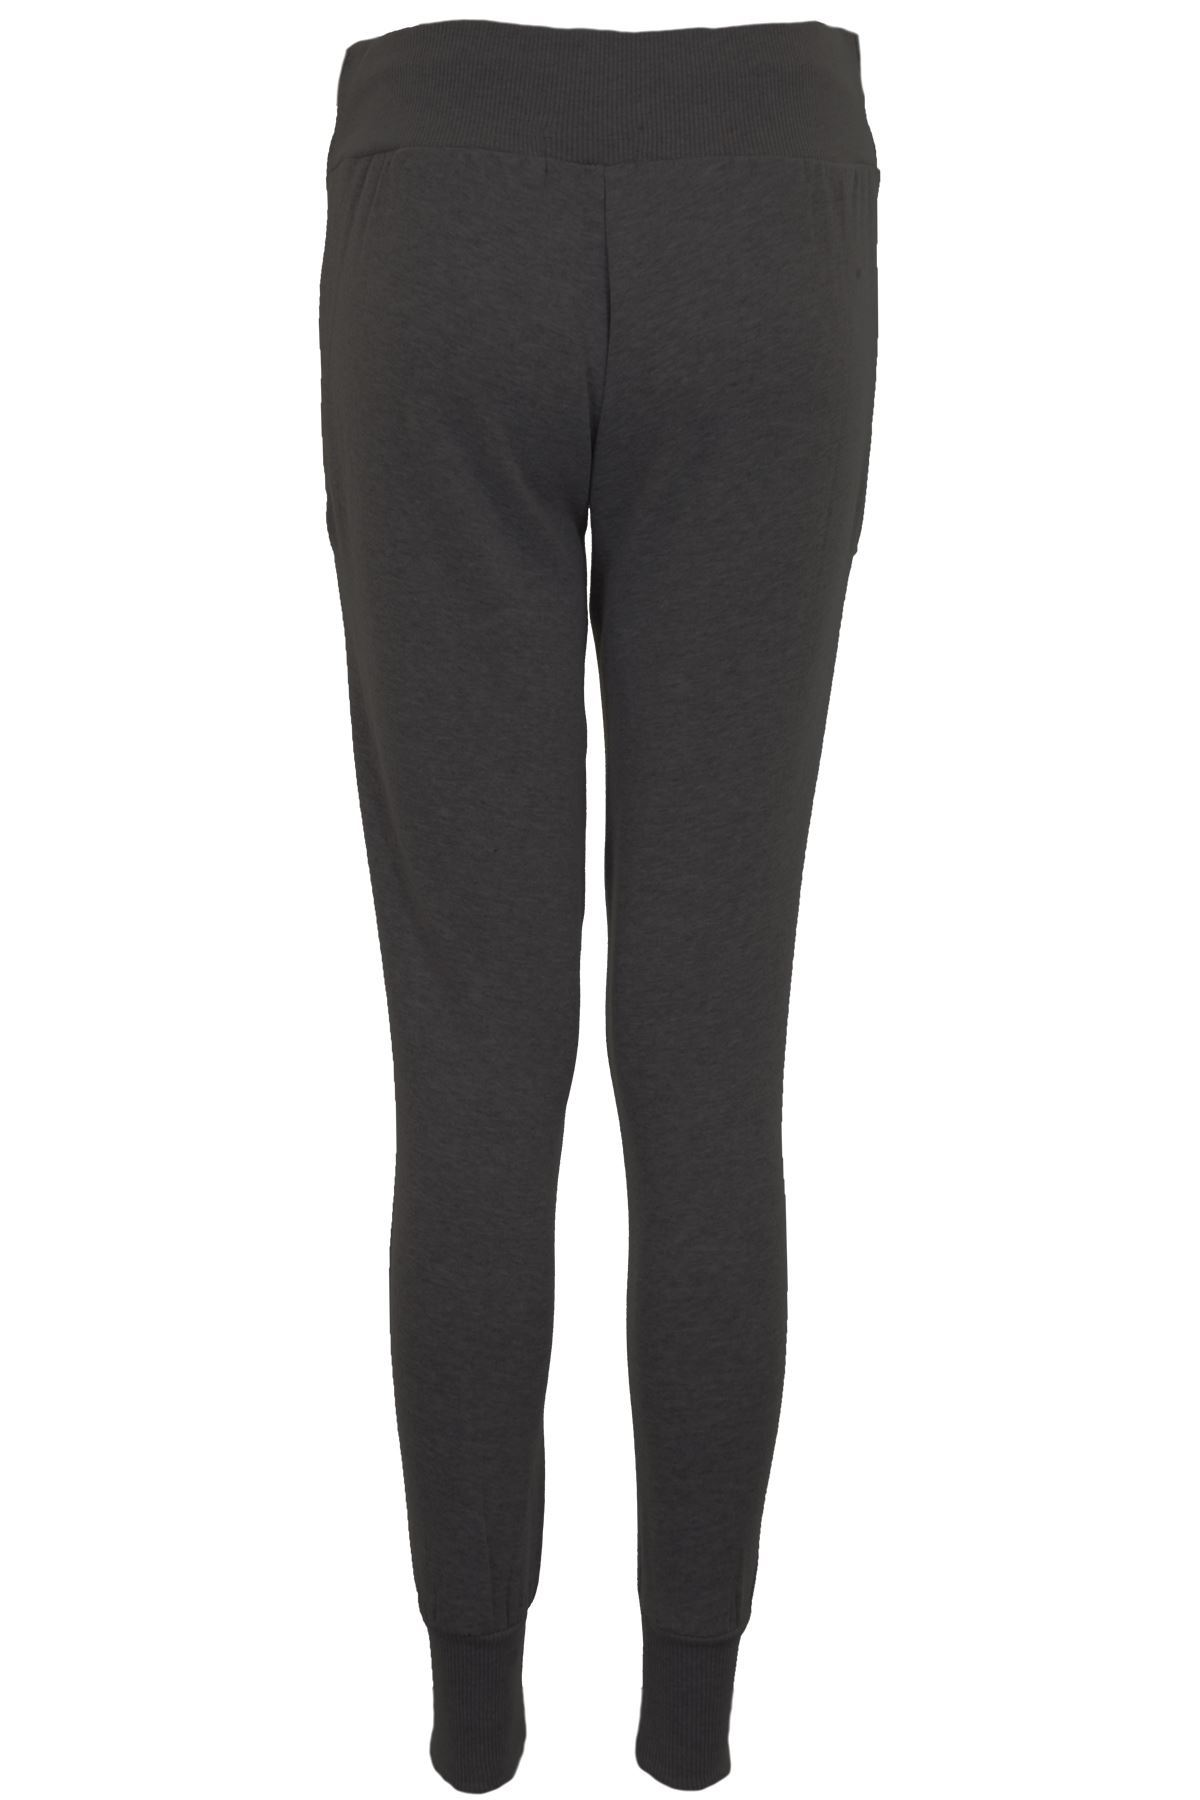 Womens Elasticated Gold Zip Pockets Luxury Trousers Tracksuit Bottoms Joggers